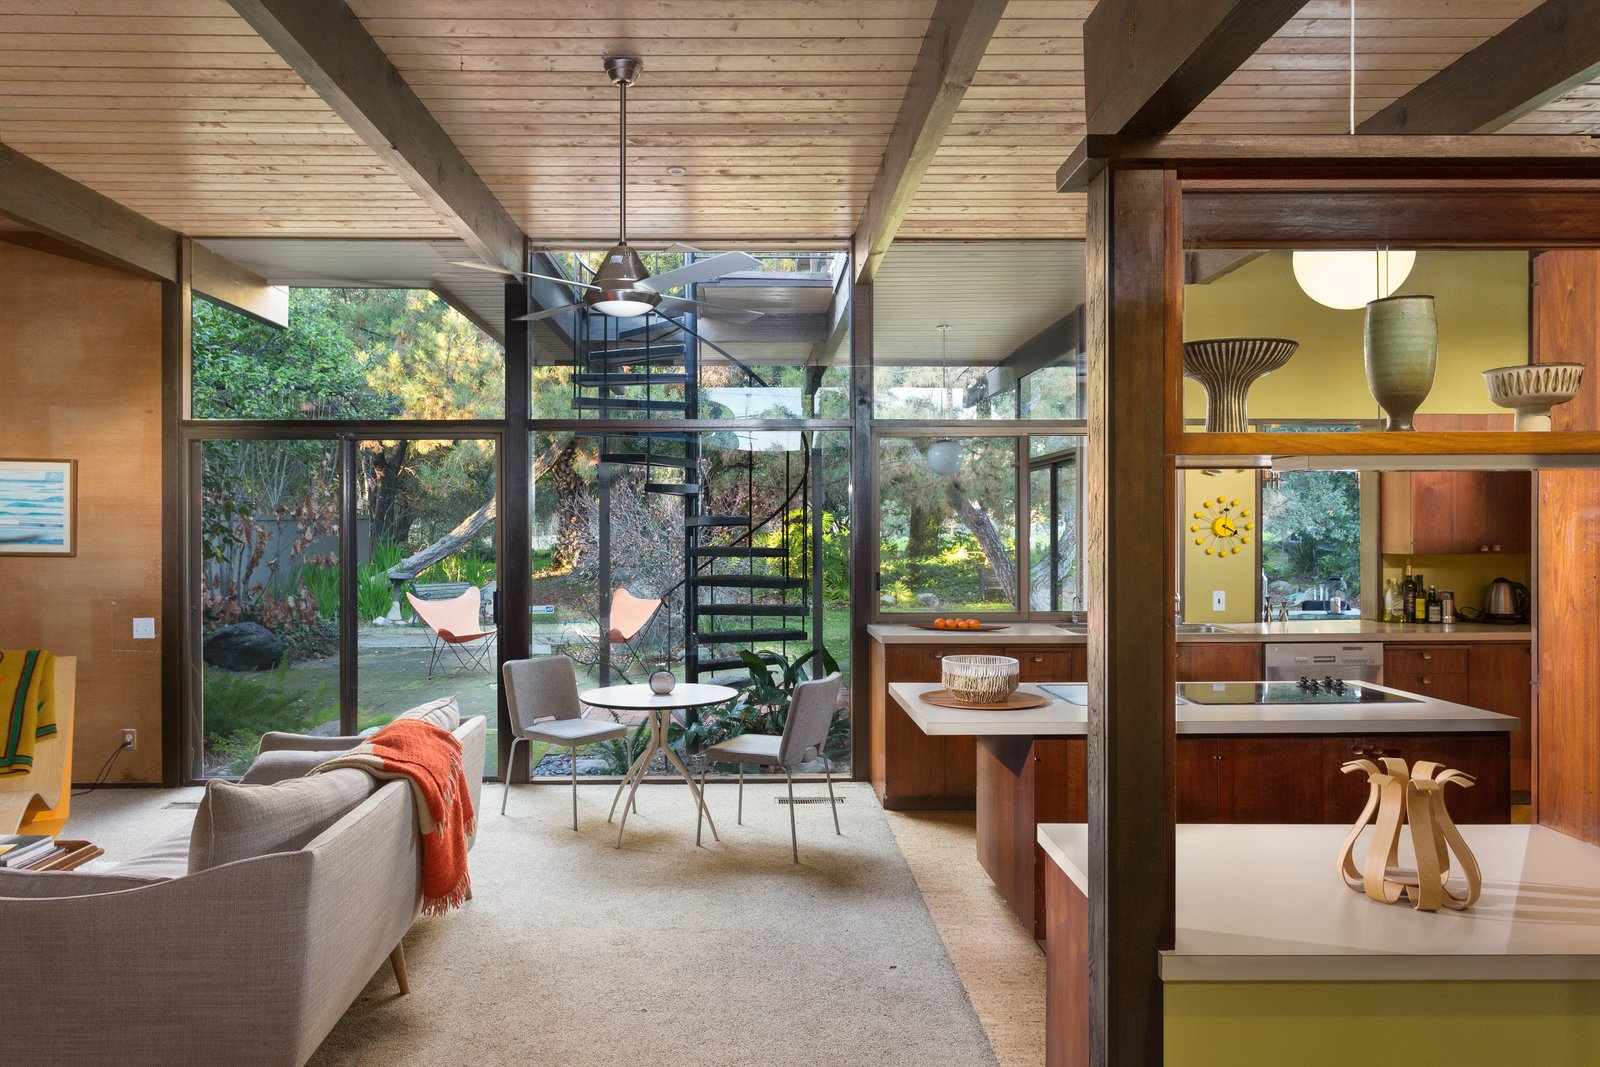 The kitchen and den, pictured above, as well as the living room and covered veranda open up to the backyard thanks to large glass walls. The rear of the house was rebuilt by architect Rufus Turner following a fire in the living room in 1964.  Photo 4 of 11 in Snag This Midcentury Stunner in Southern California For $799K